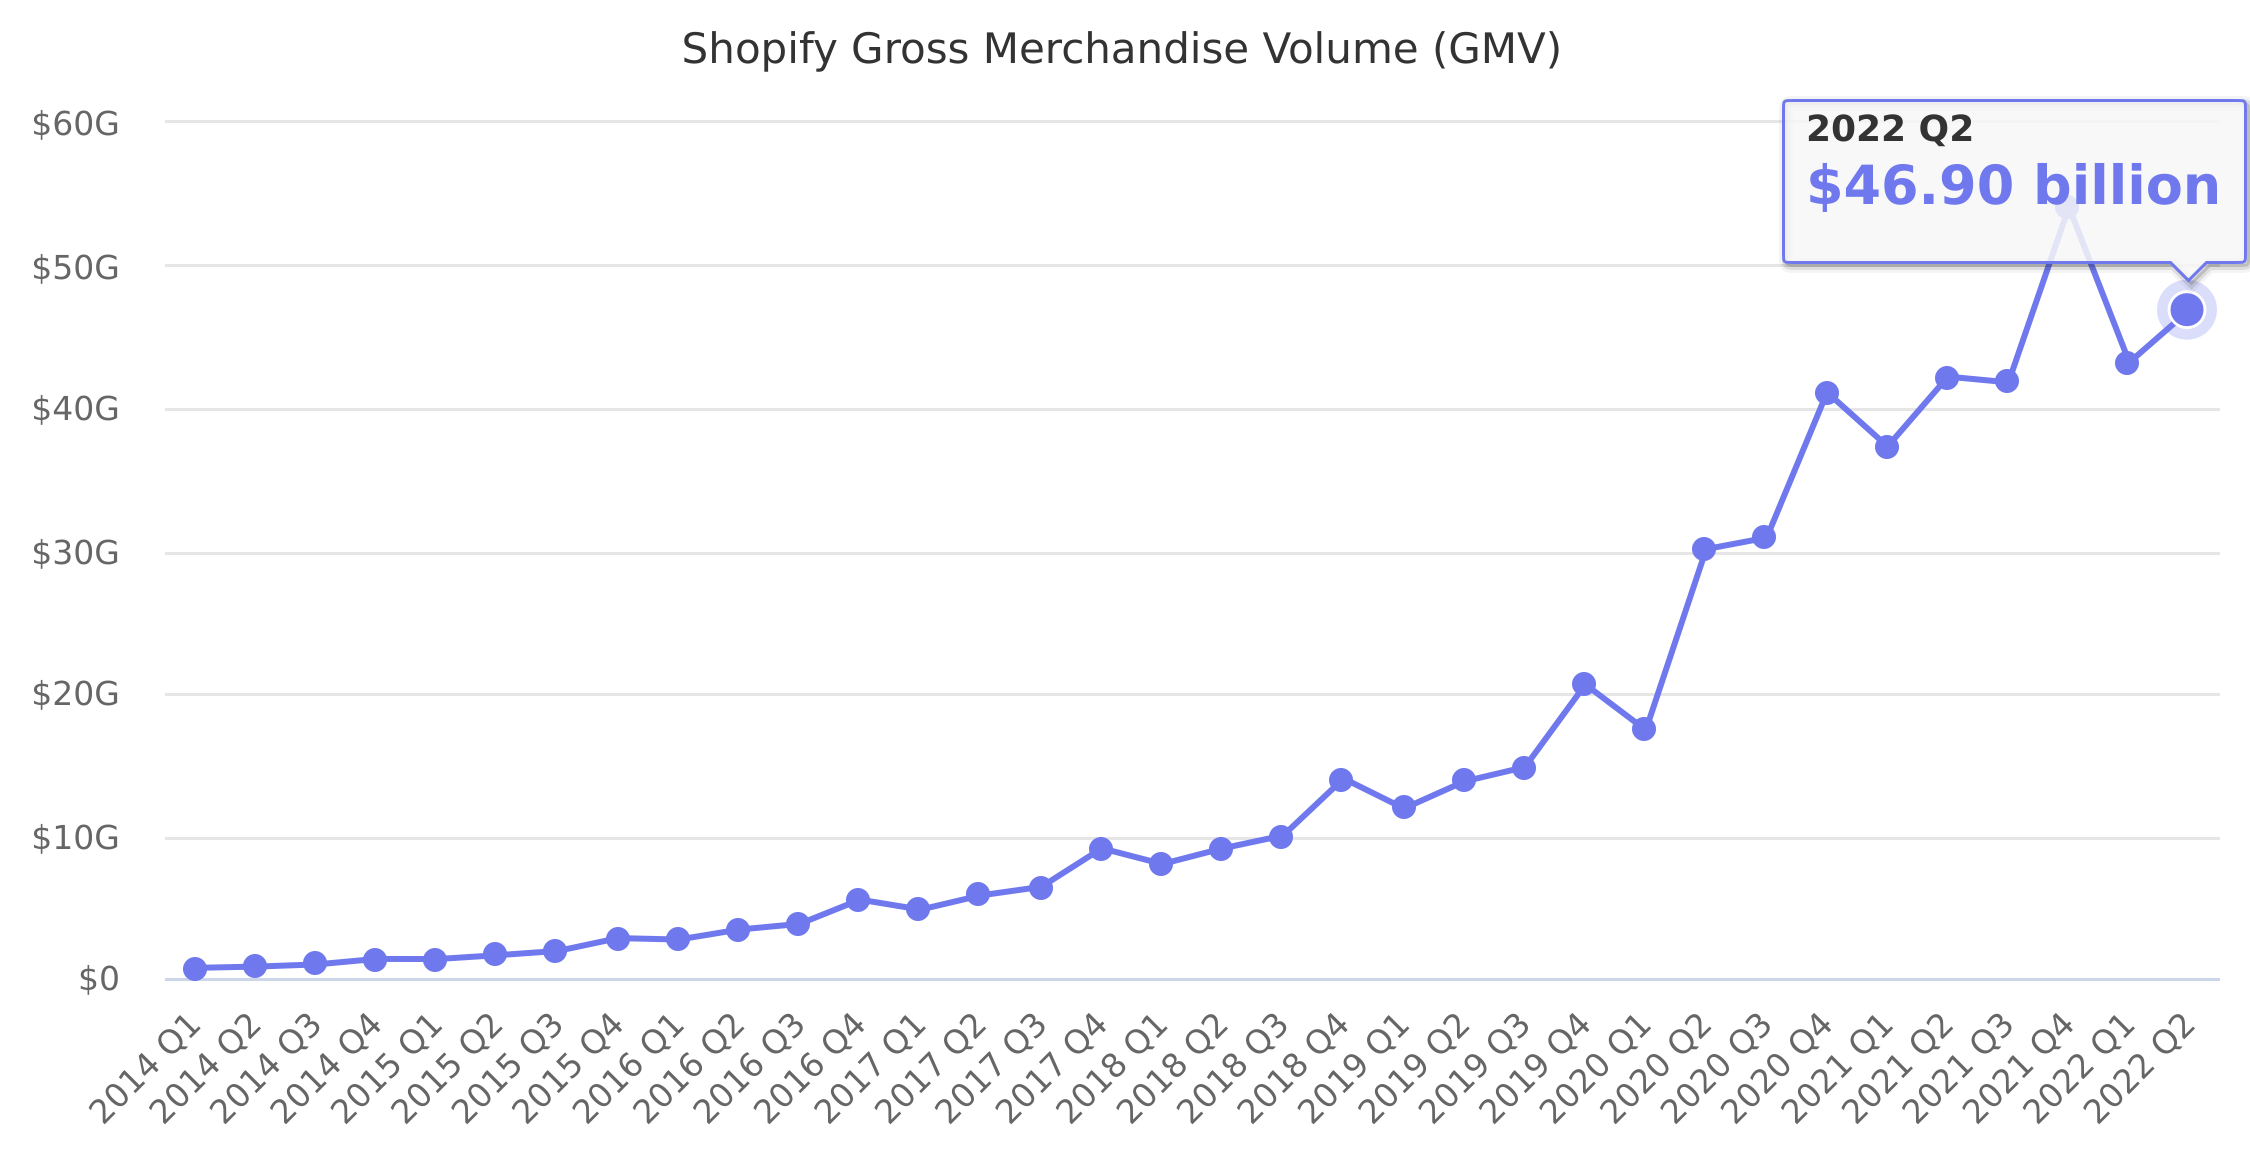 Shopify Gross Merchandise Volume (GMV) 2014-2018